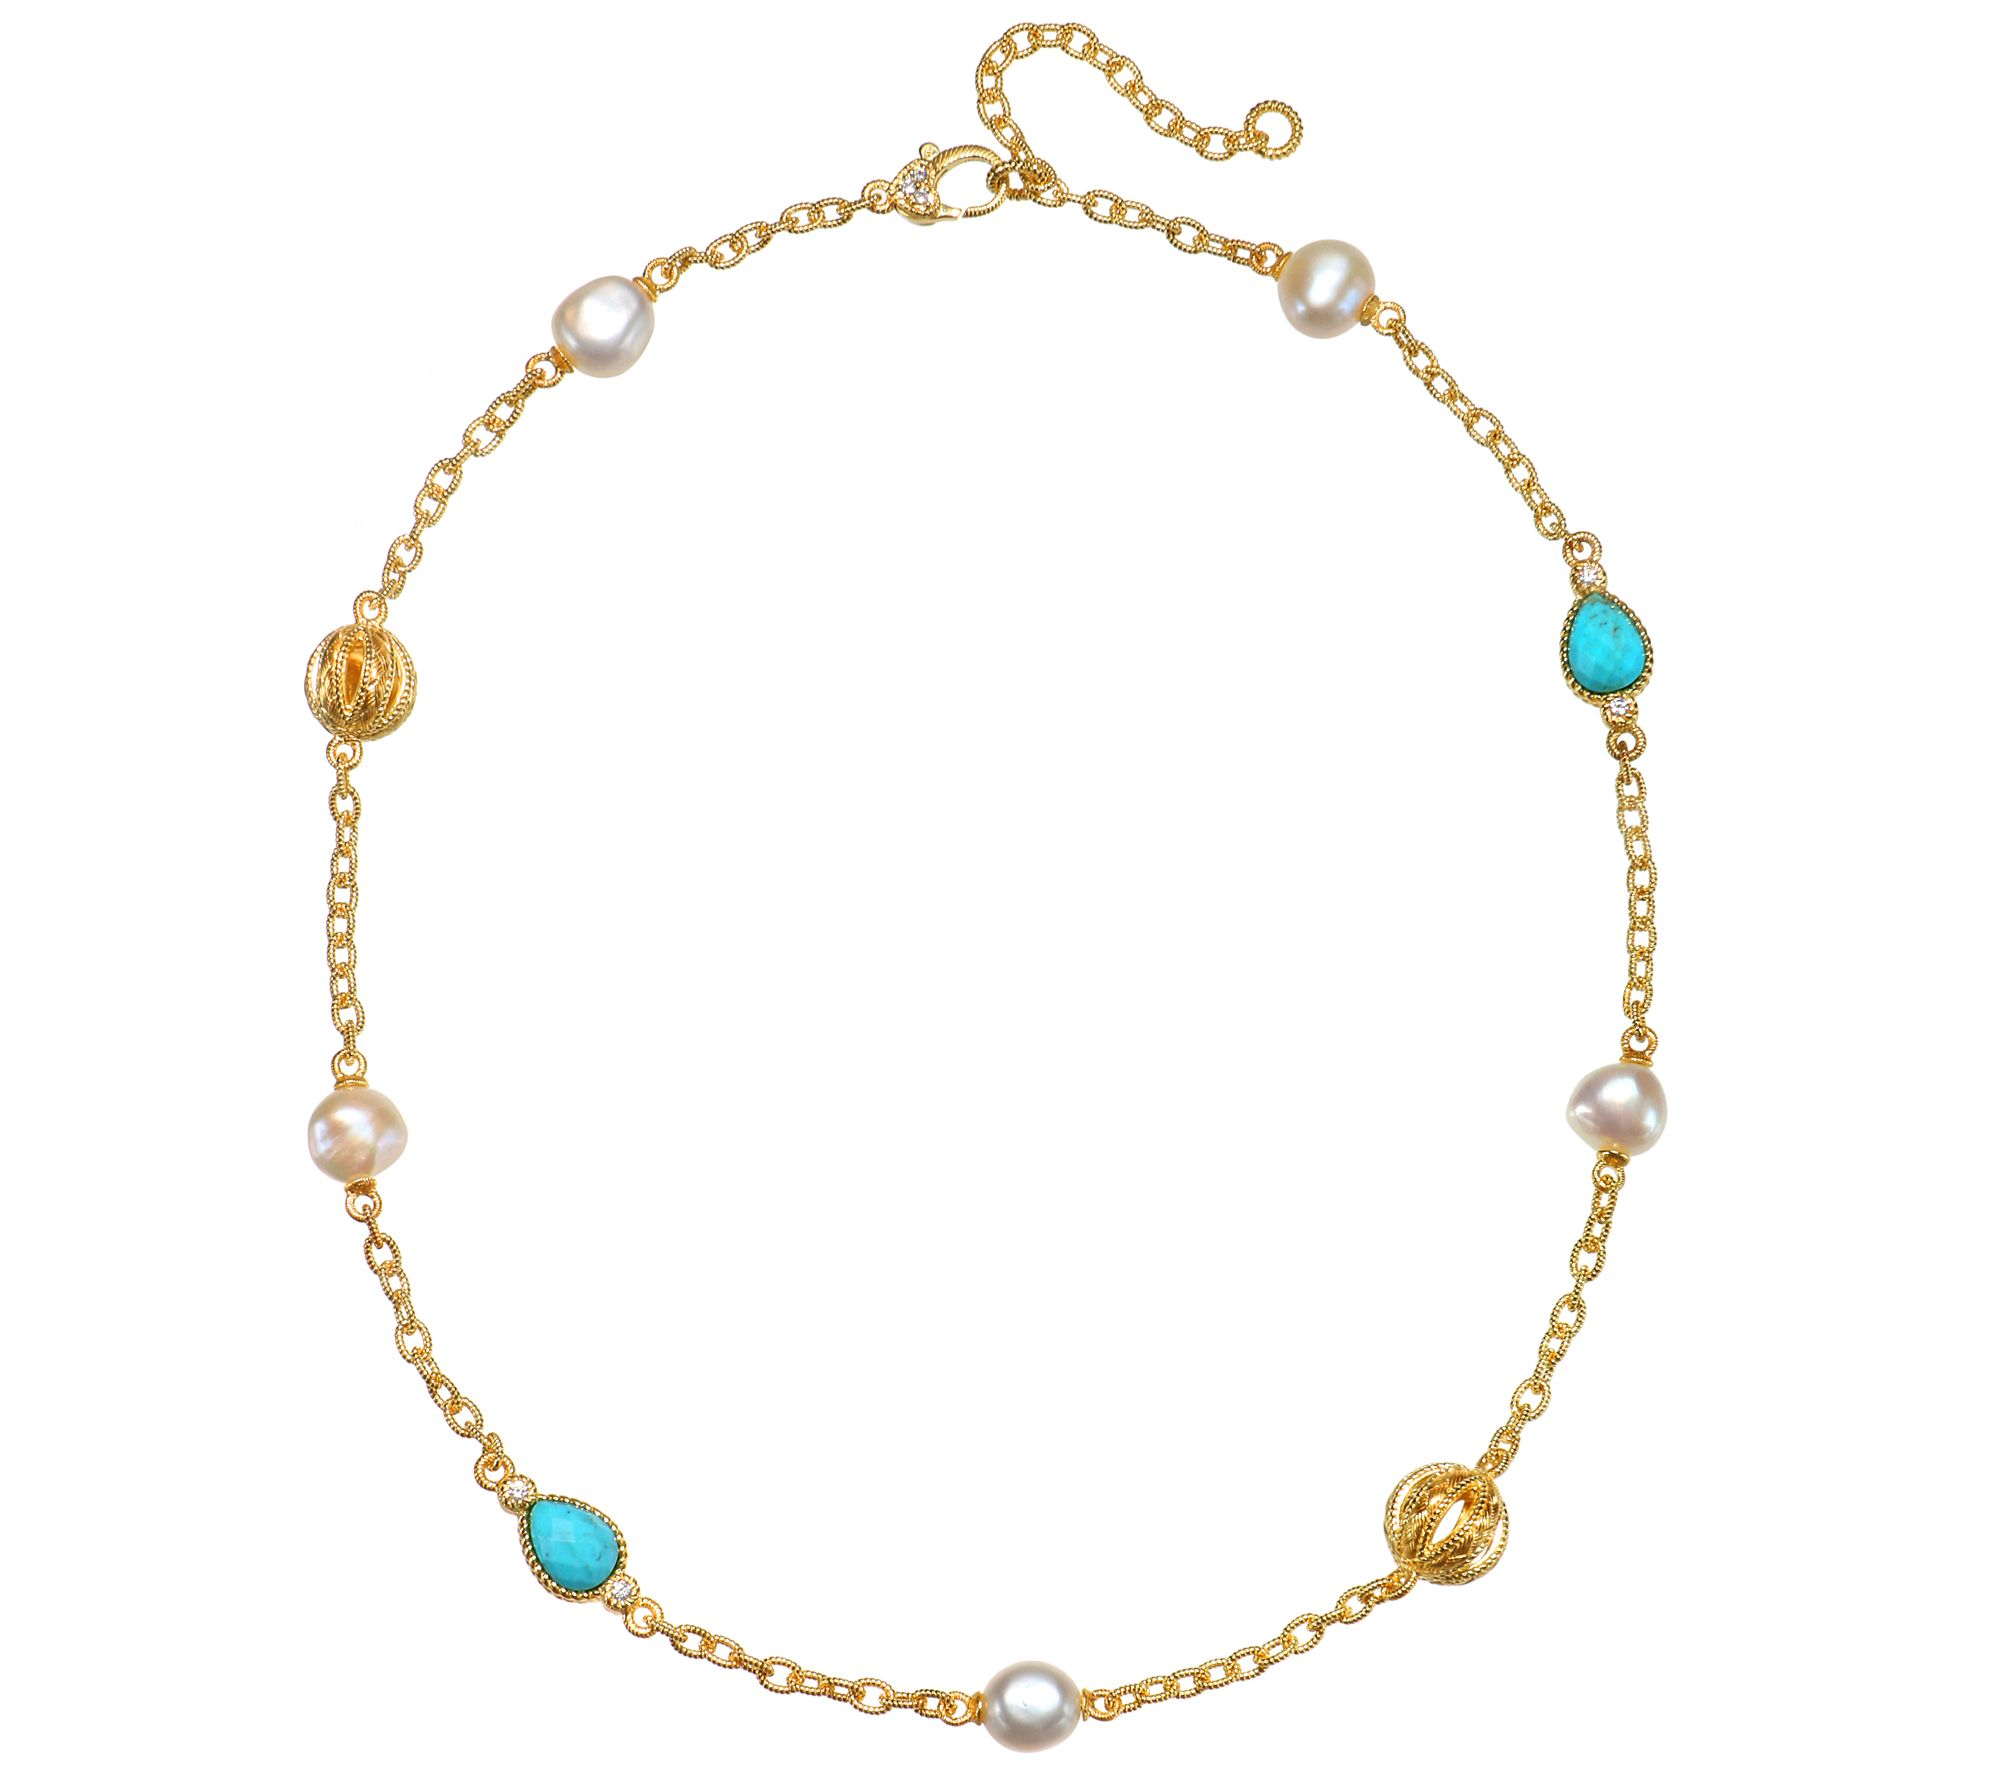 judith ripka sterling clad turquoise pearl dmq necklace qvc